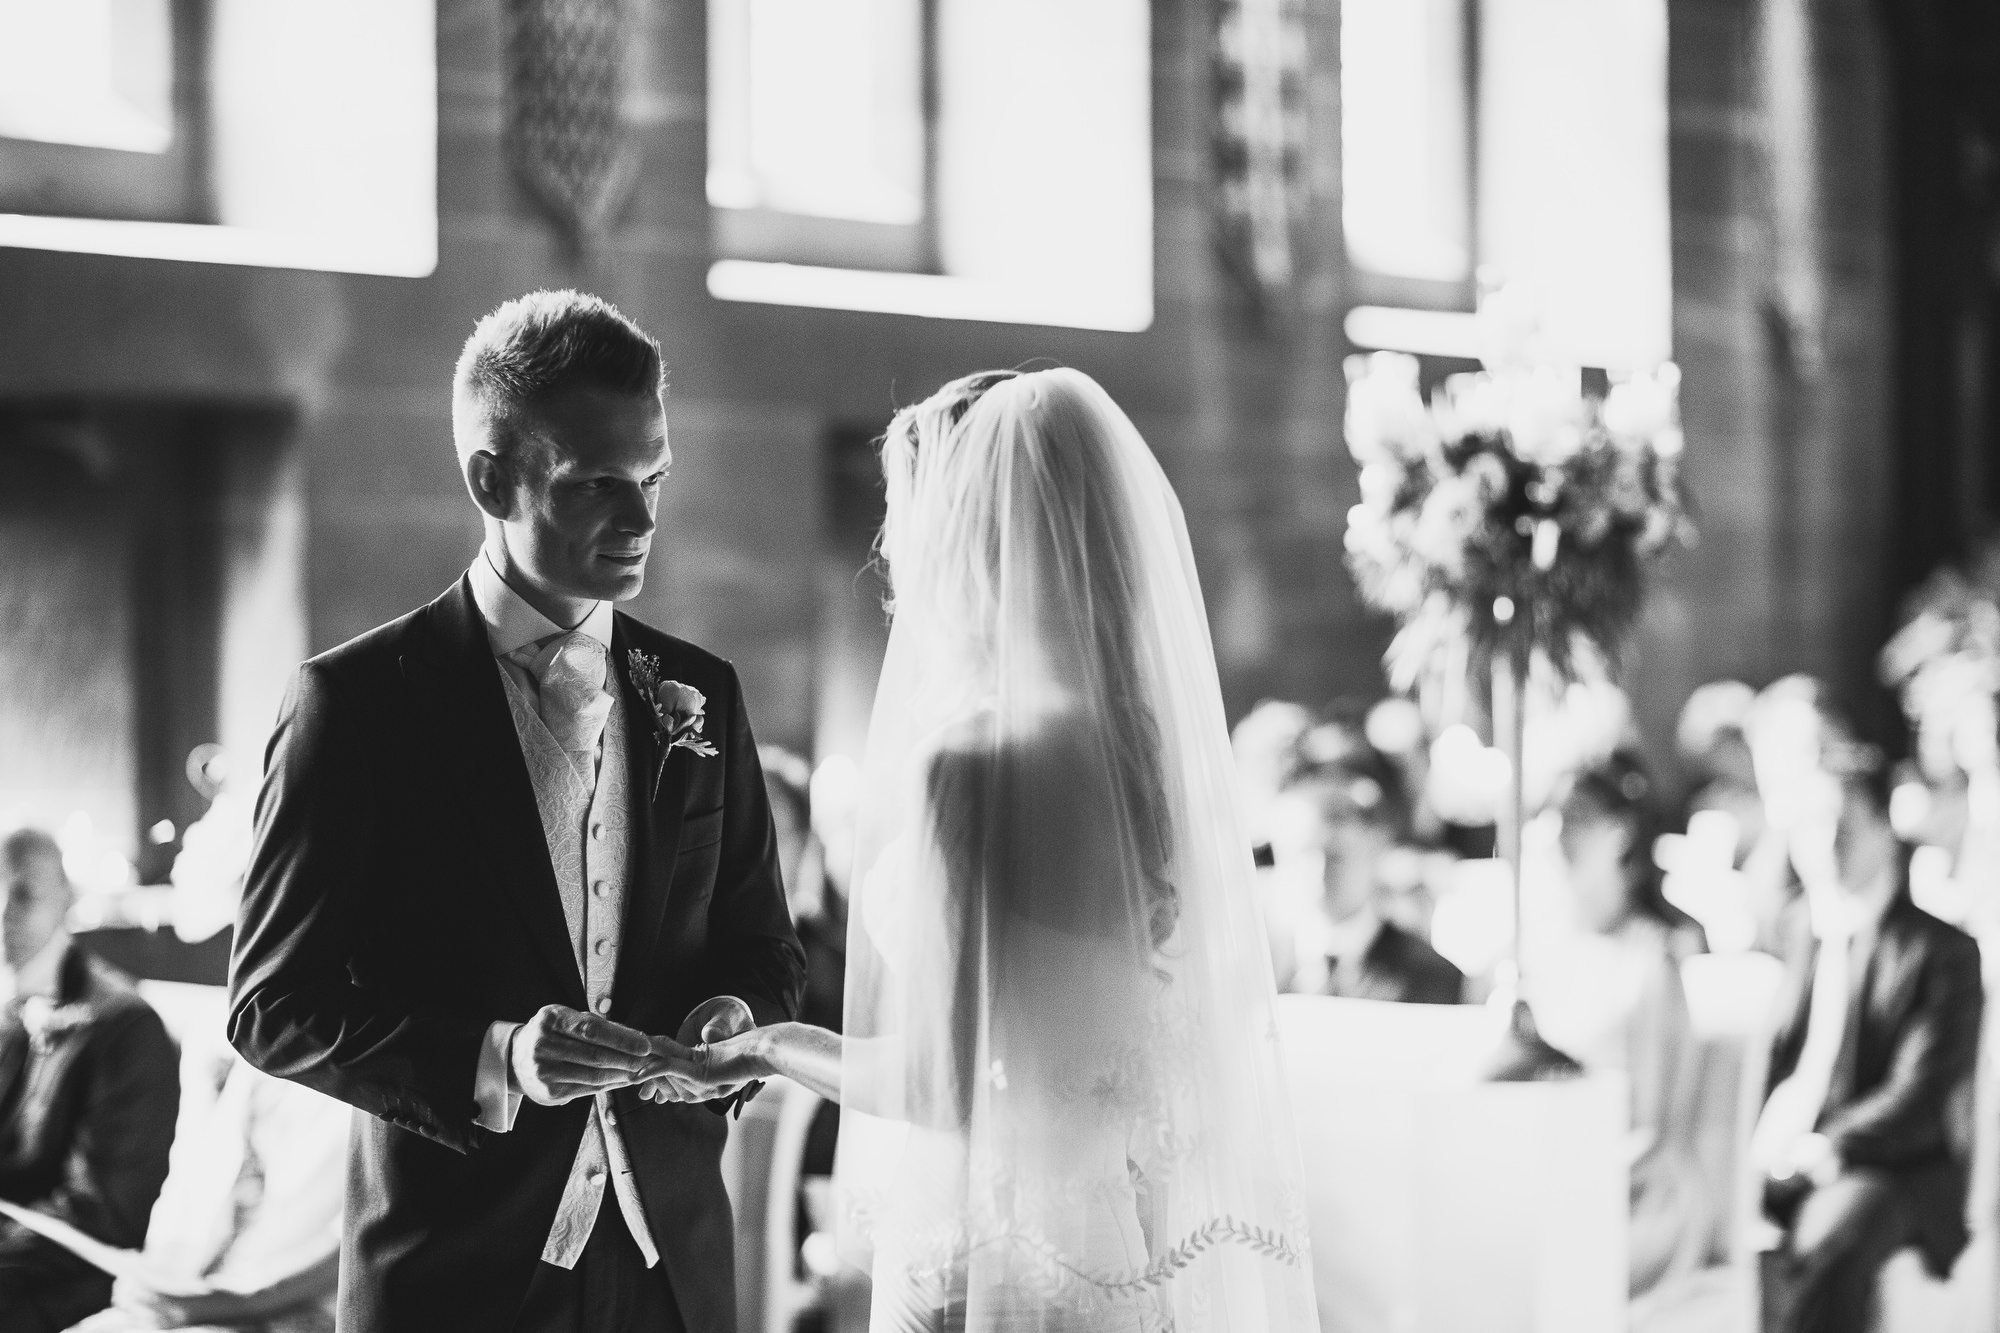 wedding photographers peckforton castle - ARJ Photography - www.arj-photo.co.uk